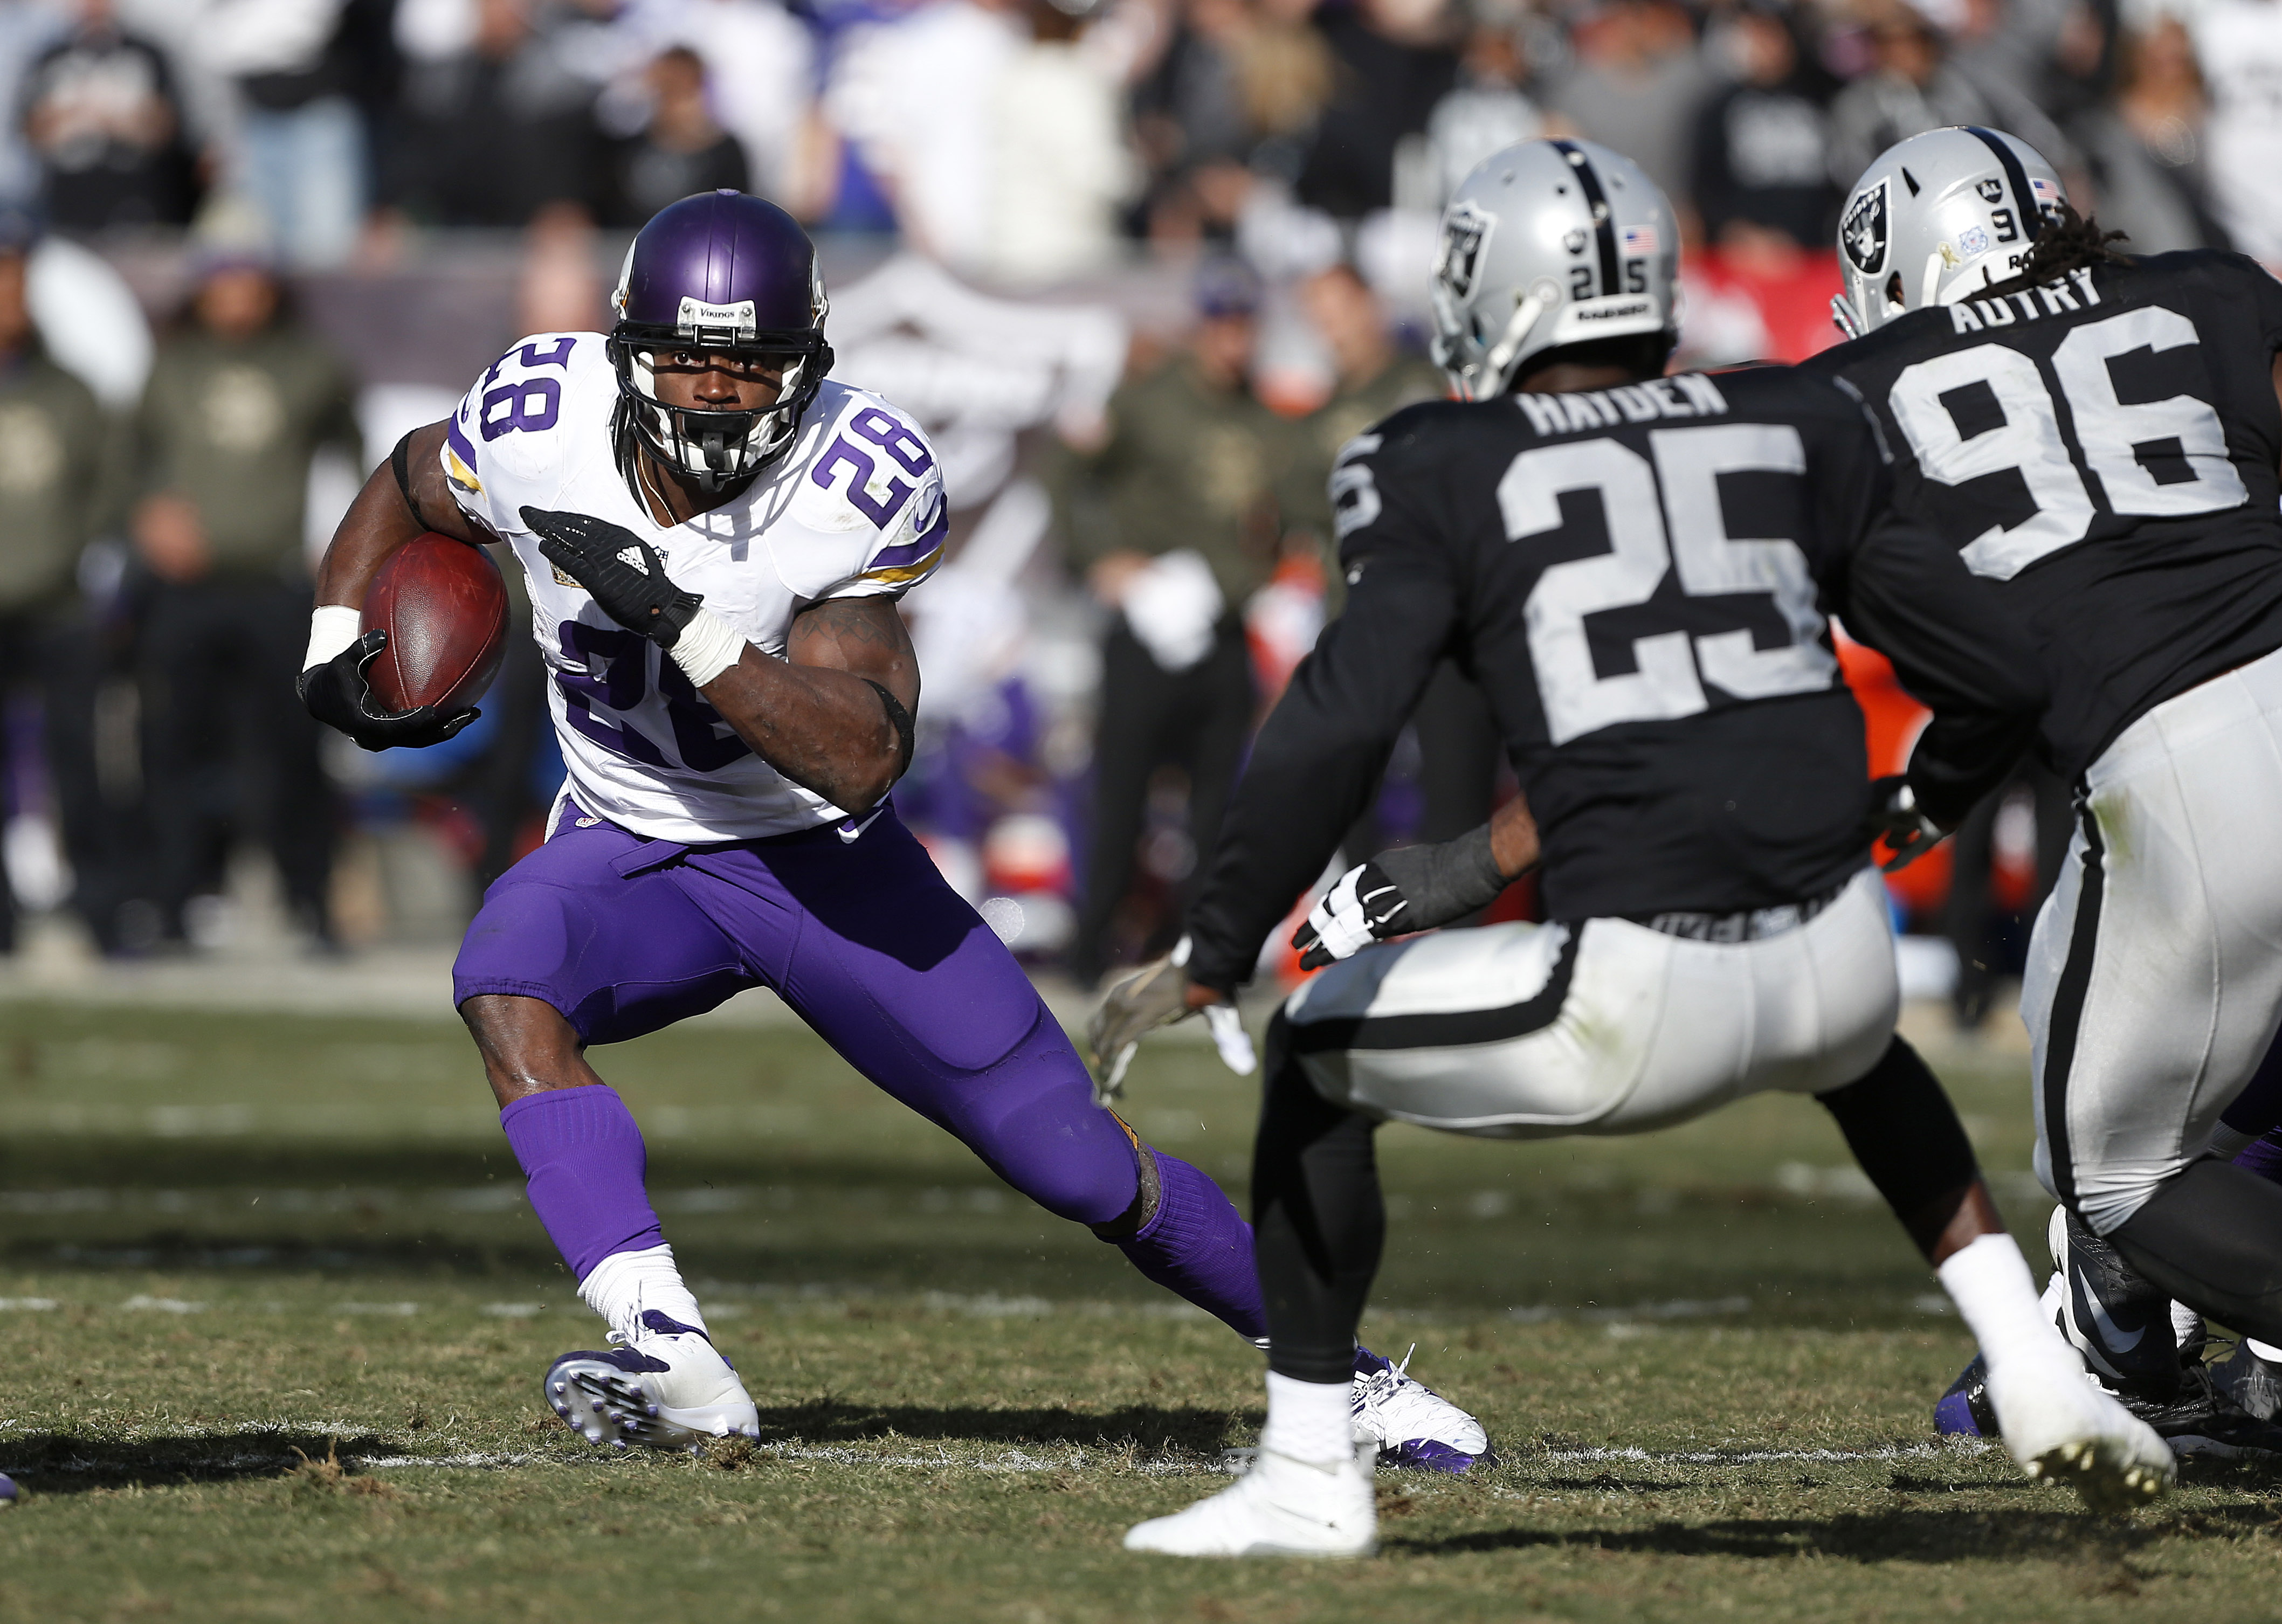 FILE - In this Nov. 15, 2015, file photo, Minnesota Vikings running back Adrian Peterson (28) carries against the Oakland Raiders during the first half of an NFL football game in Oakland, Calif. Peterson's 961 yards rushing easily leads the league. And th